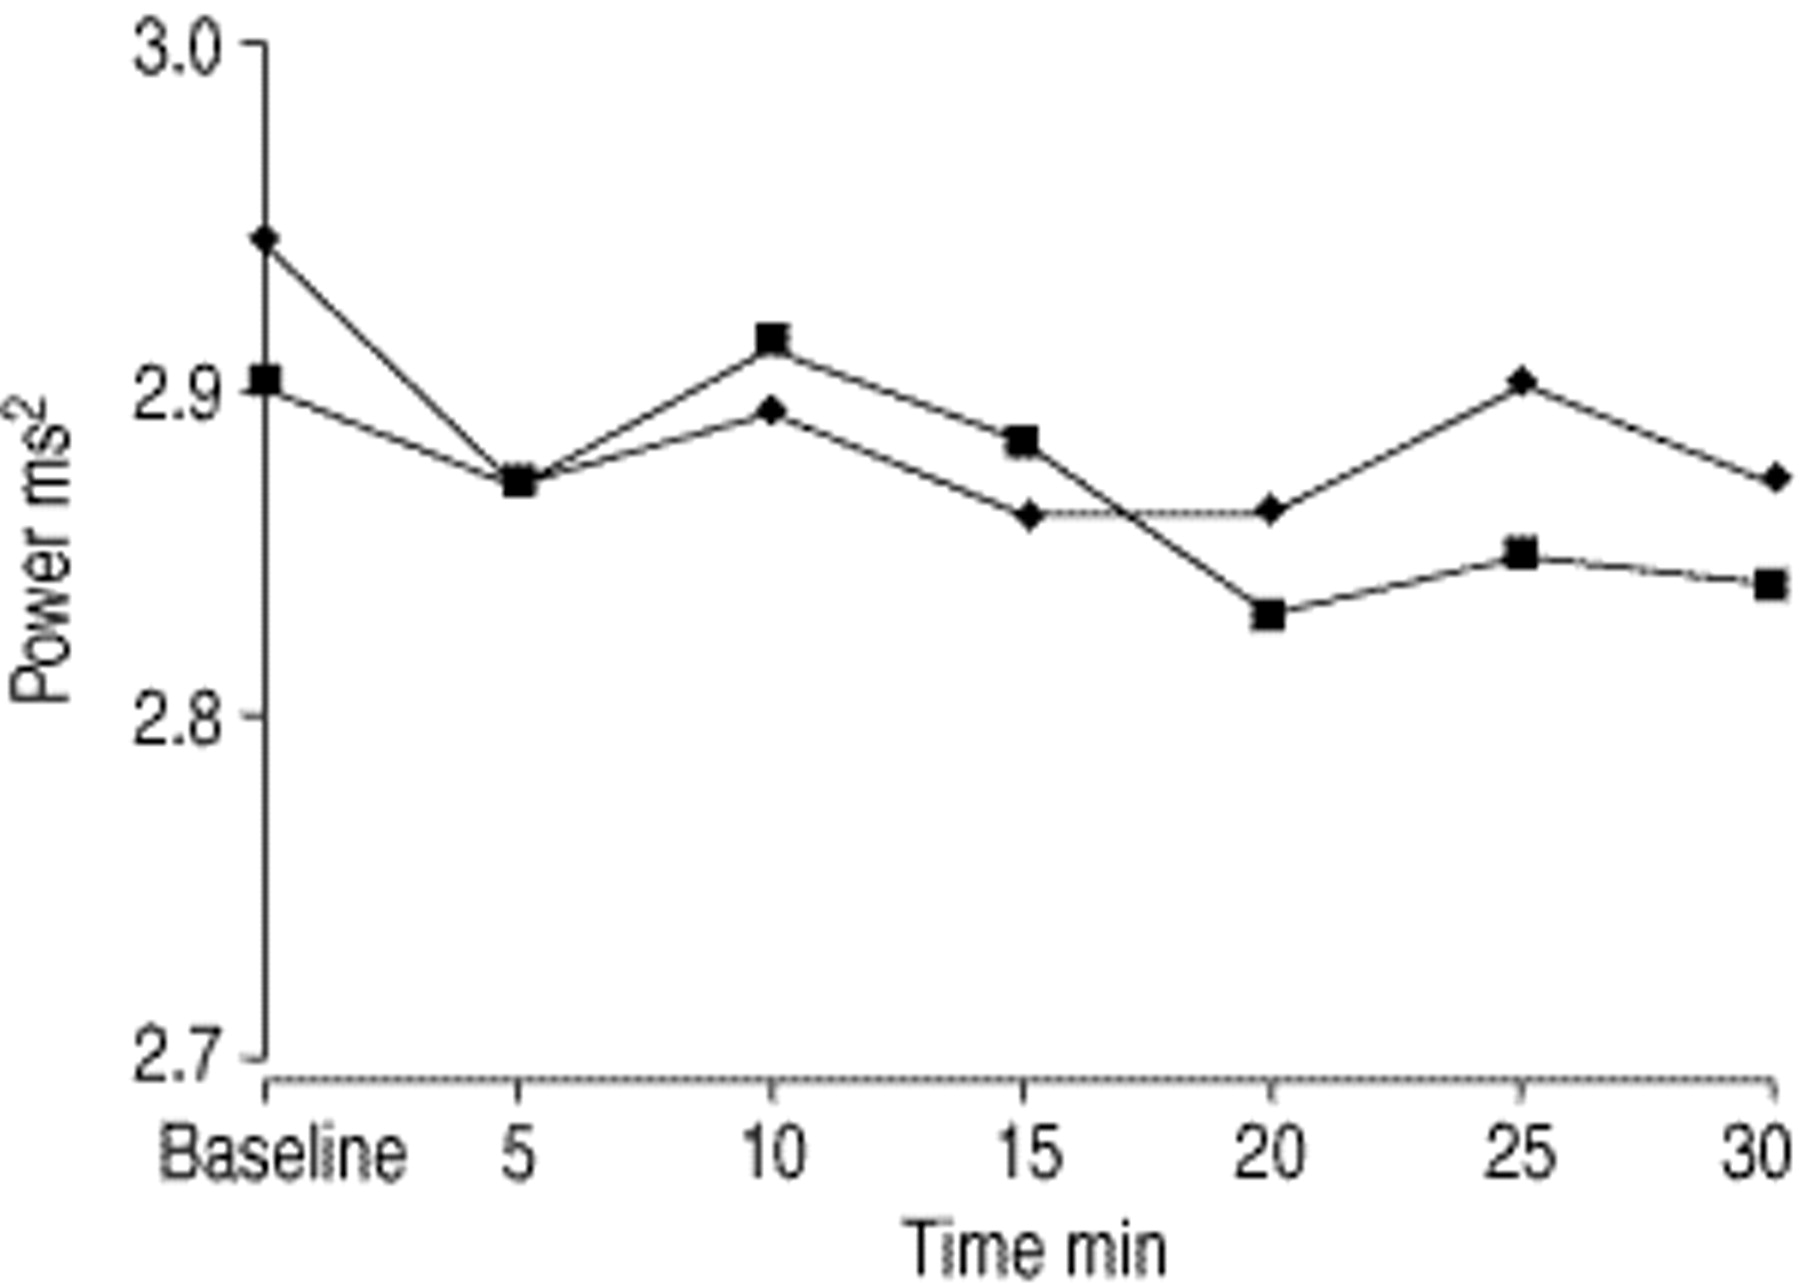 Comparison of the acute effects of salbutamol and